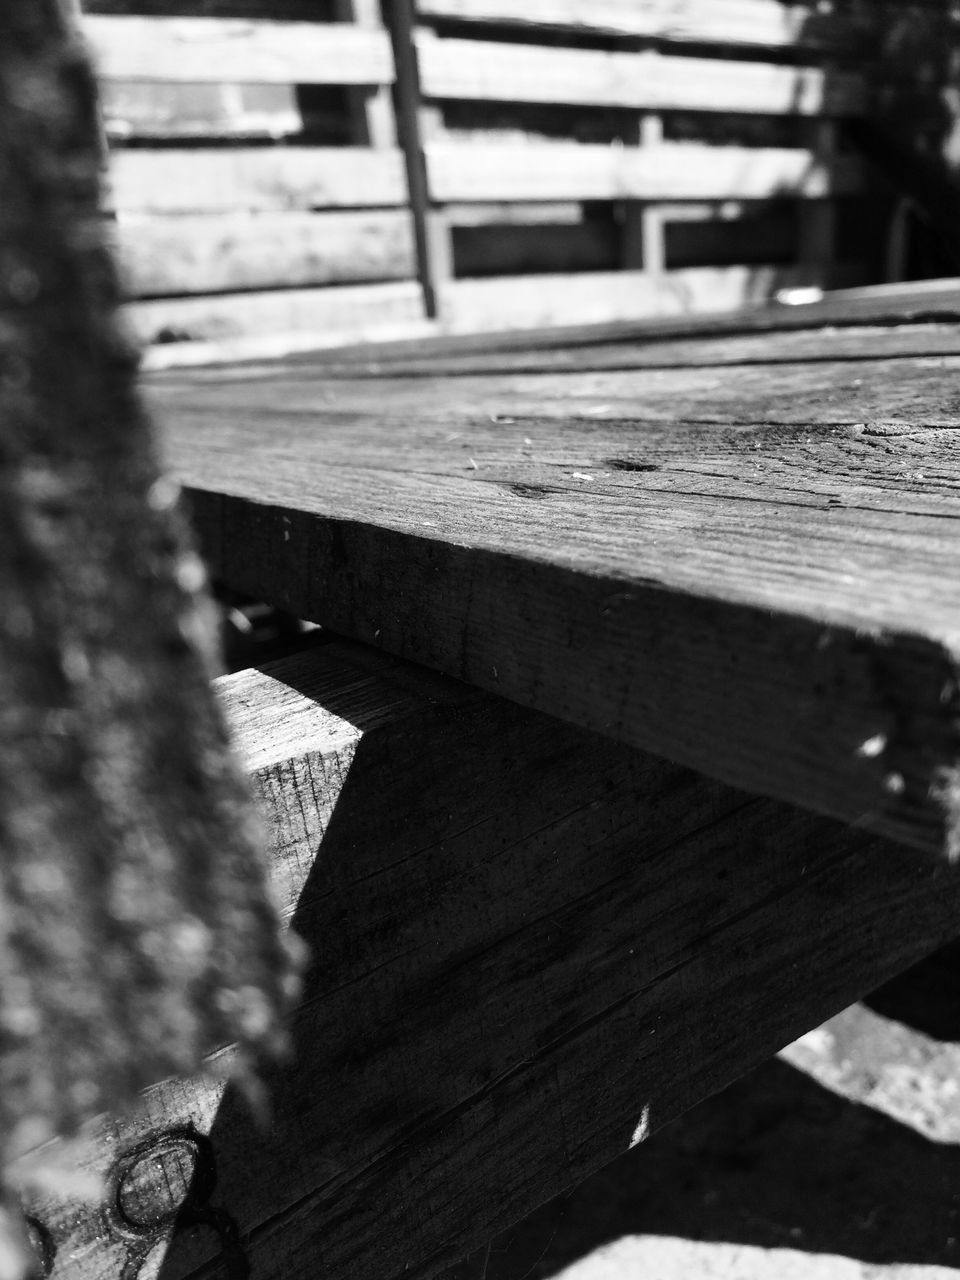 wood - material, no people, day, outdoors, timber, sunlight, shadow, close-up, nature